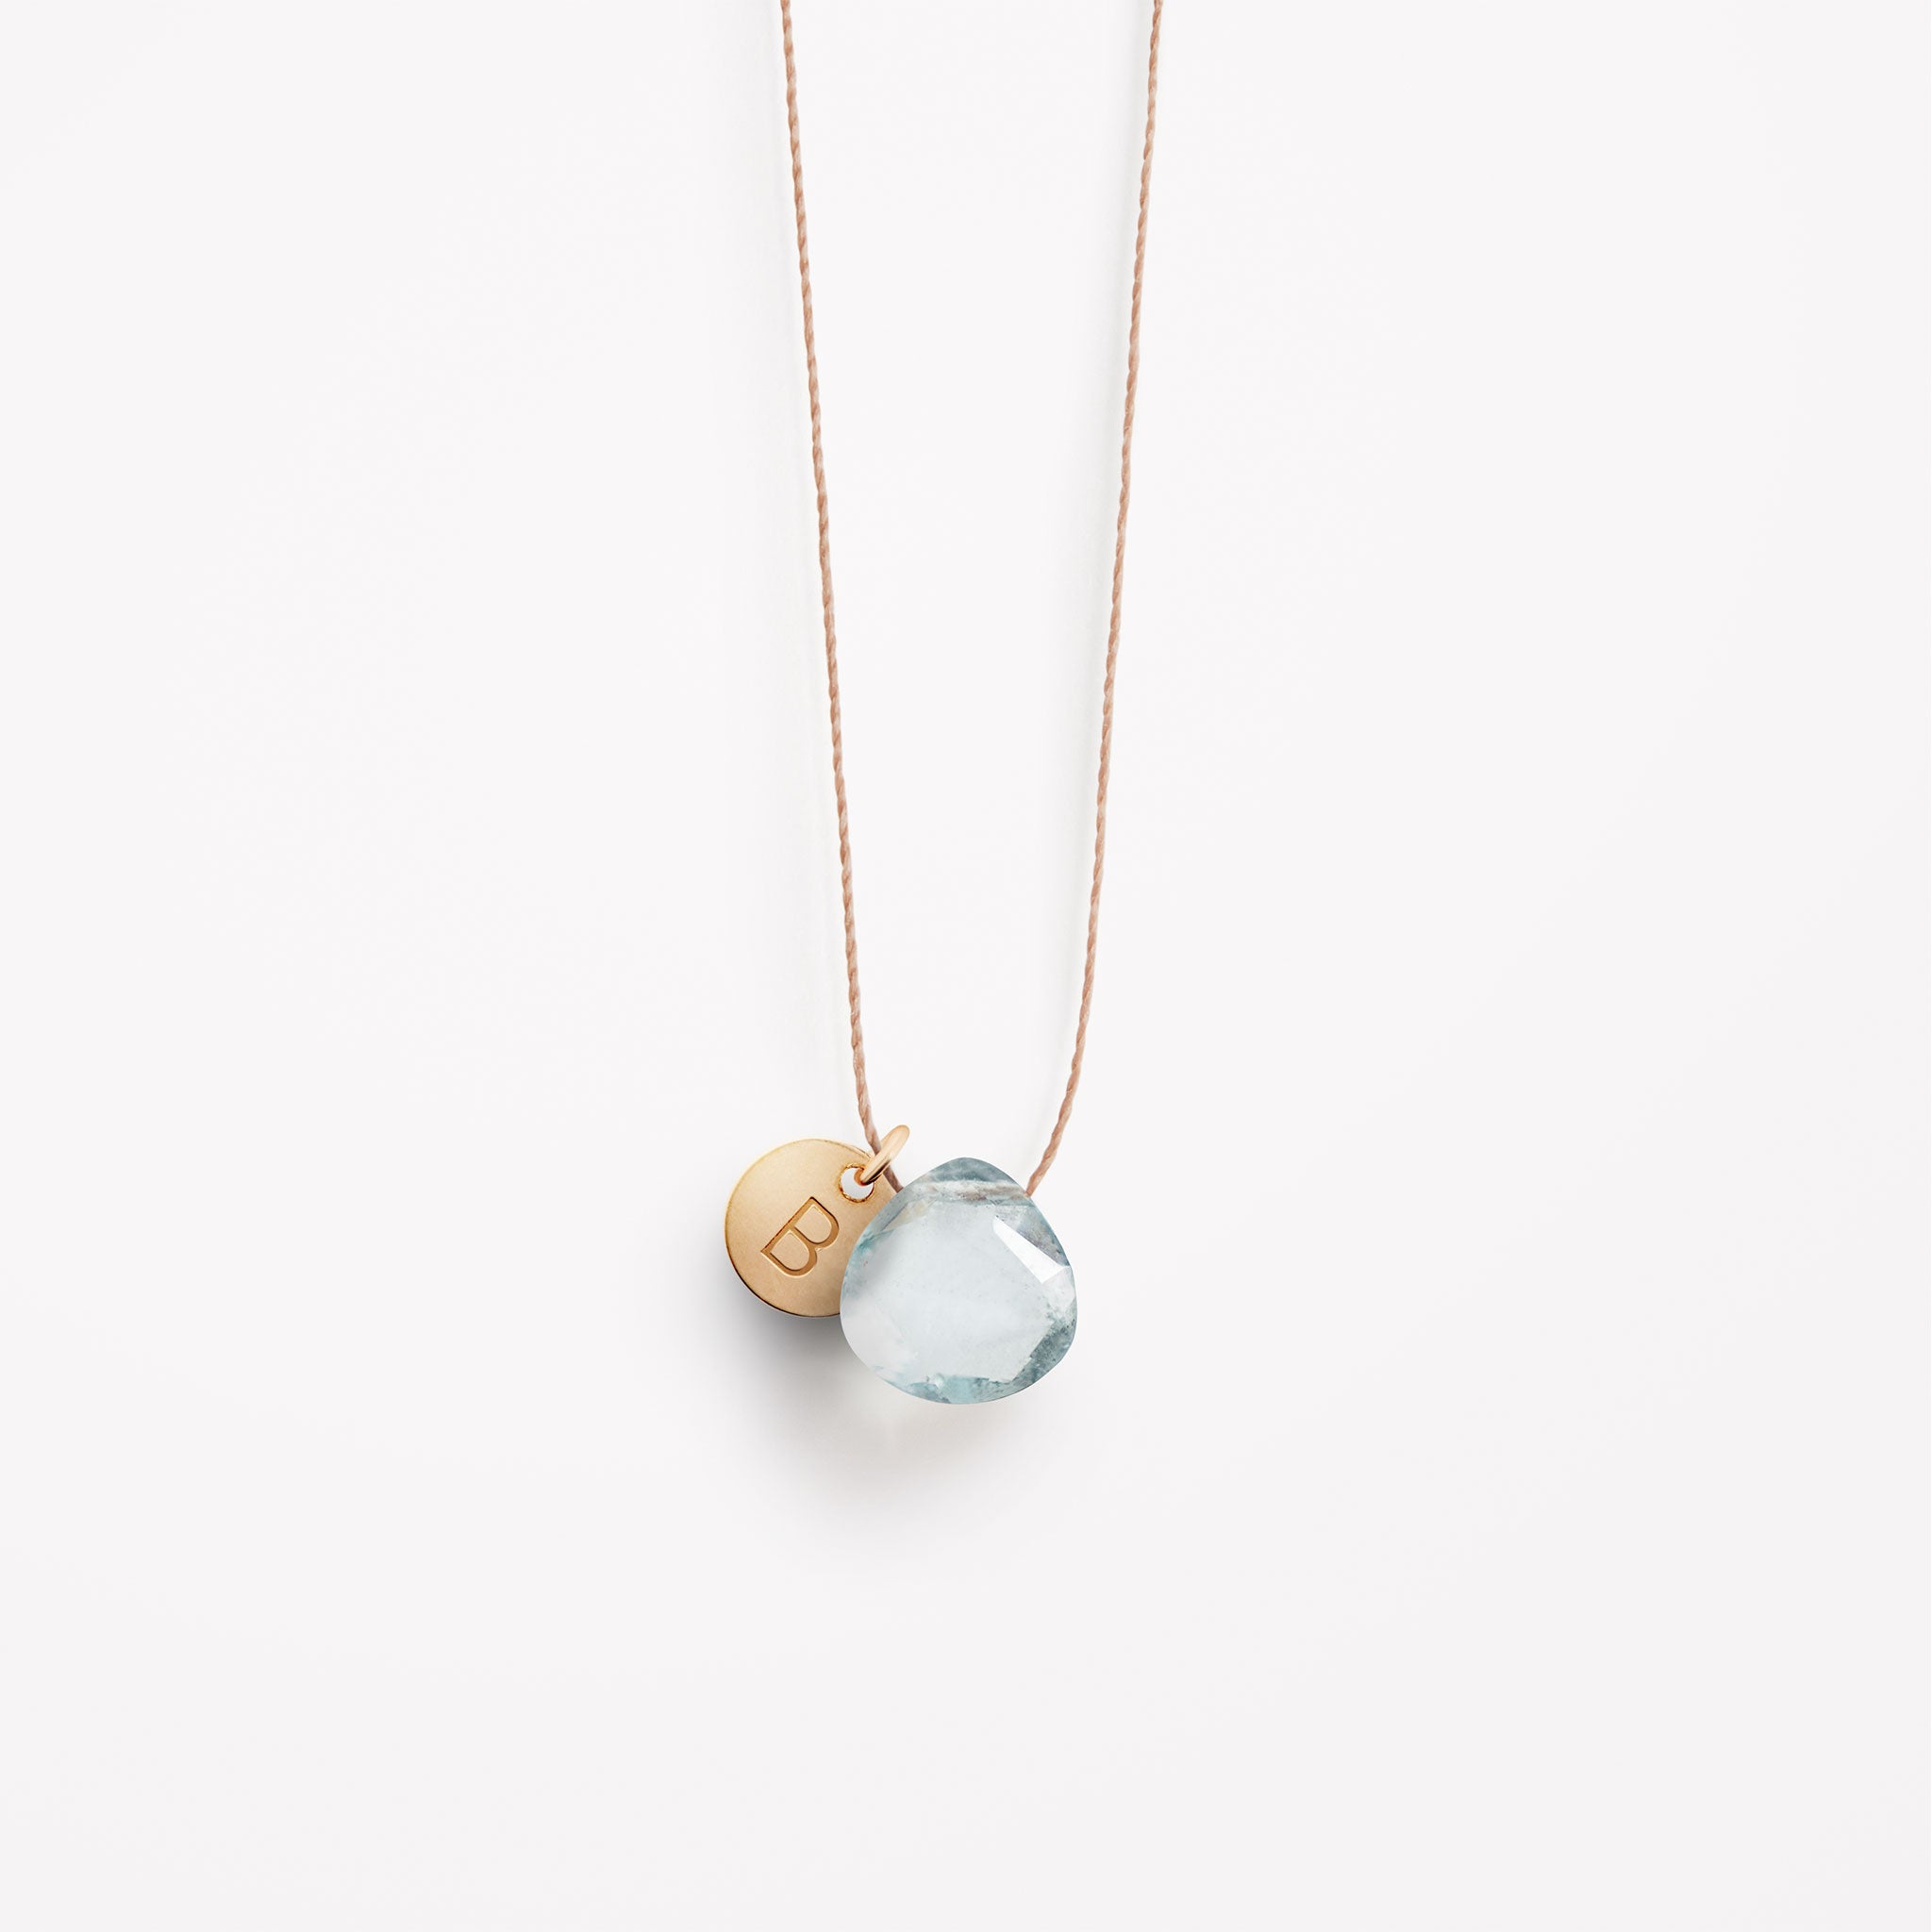 Wanderlust Life Ethically Handmade jewellery made in the UK. Minimalist gold and fine cord jewellery. Personalised aquamarine gemstone fine cord necklace with gold personalised tag.